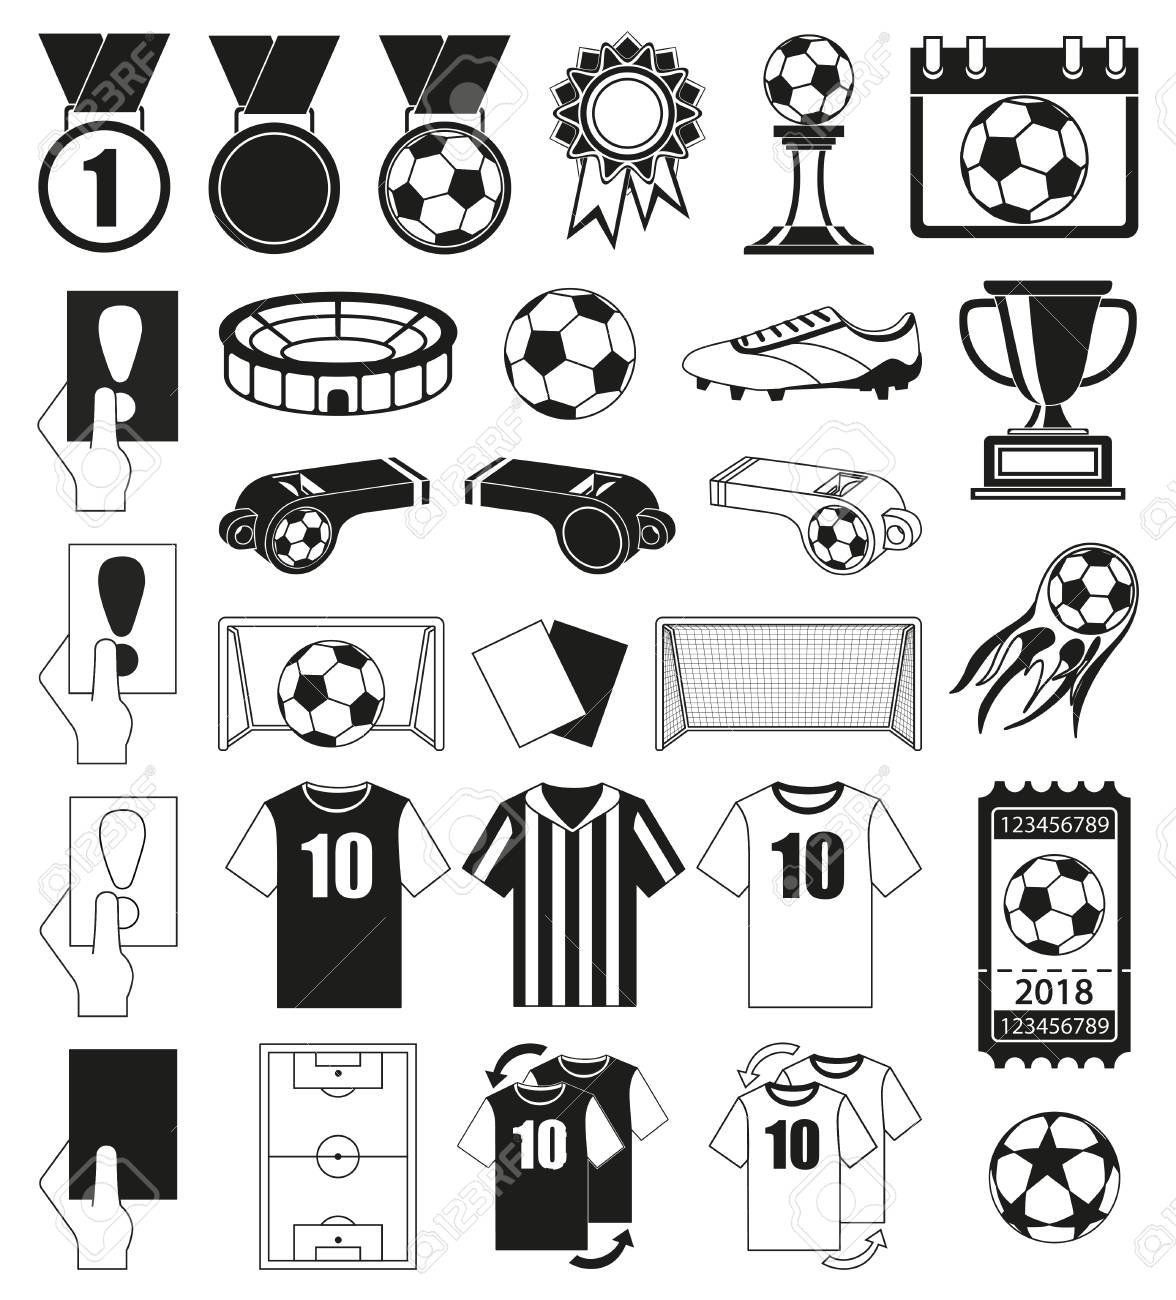 30 soccer elements black and white set sport vector illustration for icon sticker sign